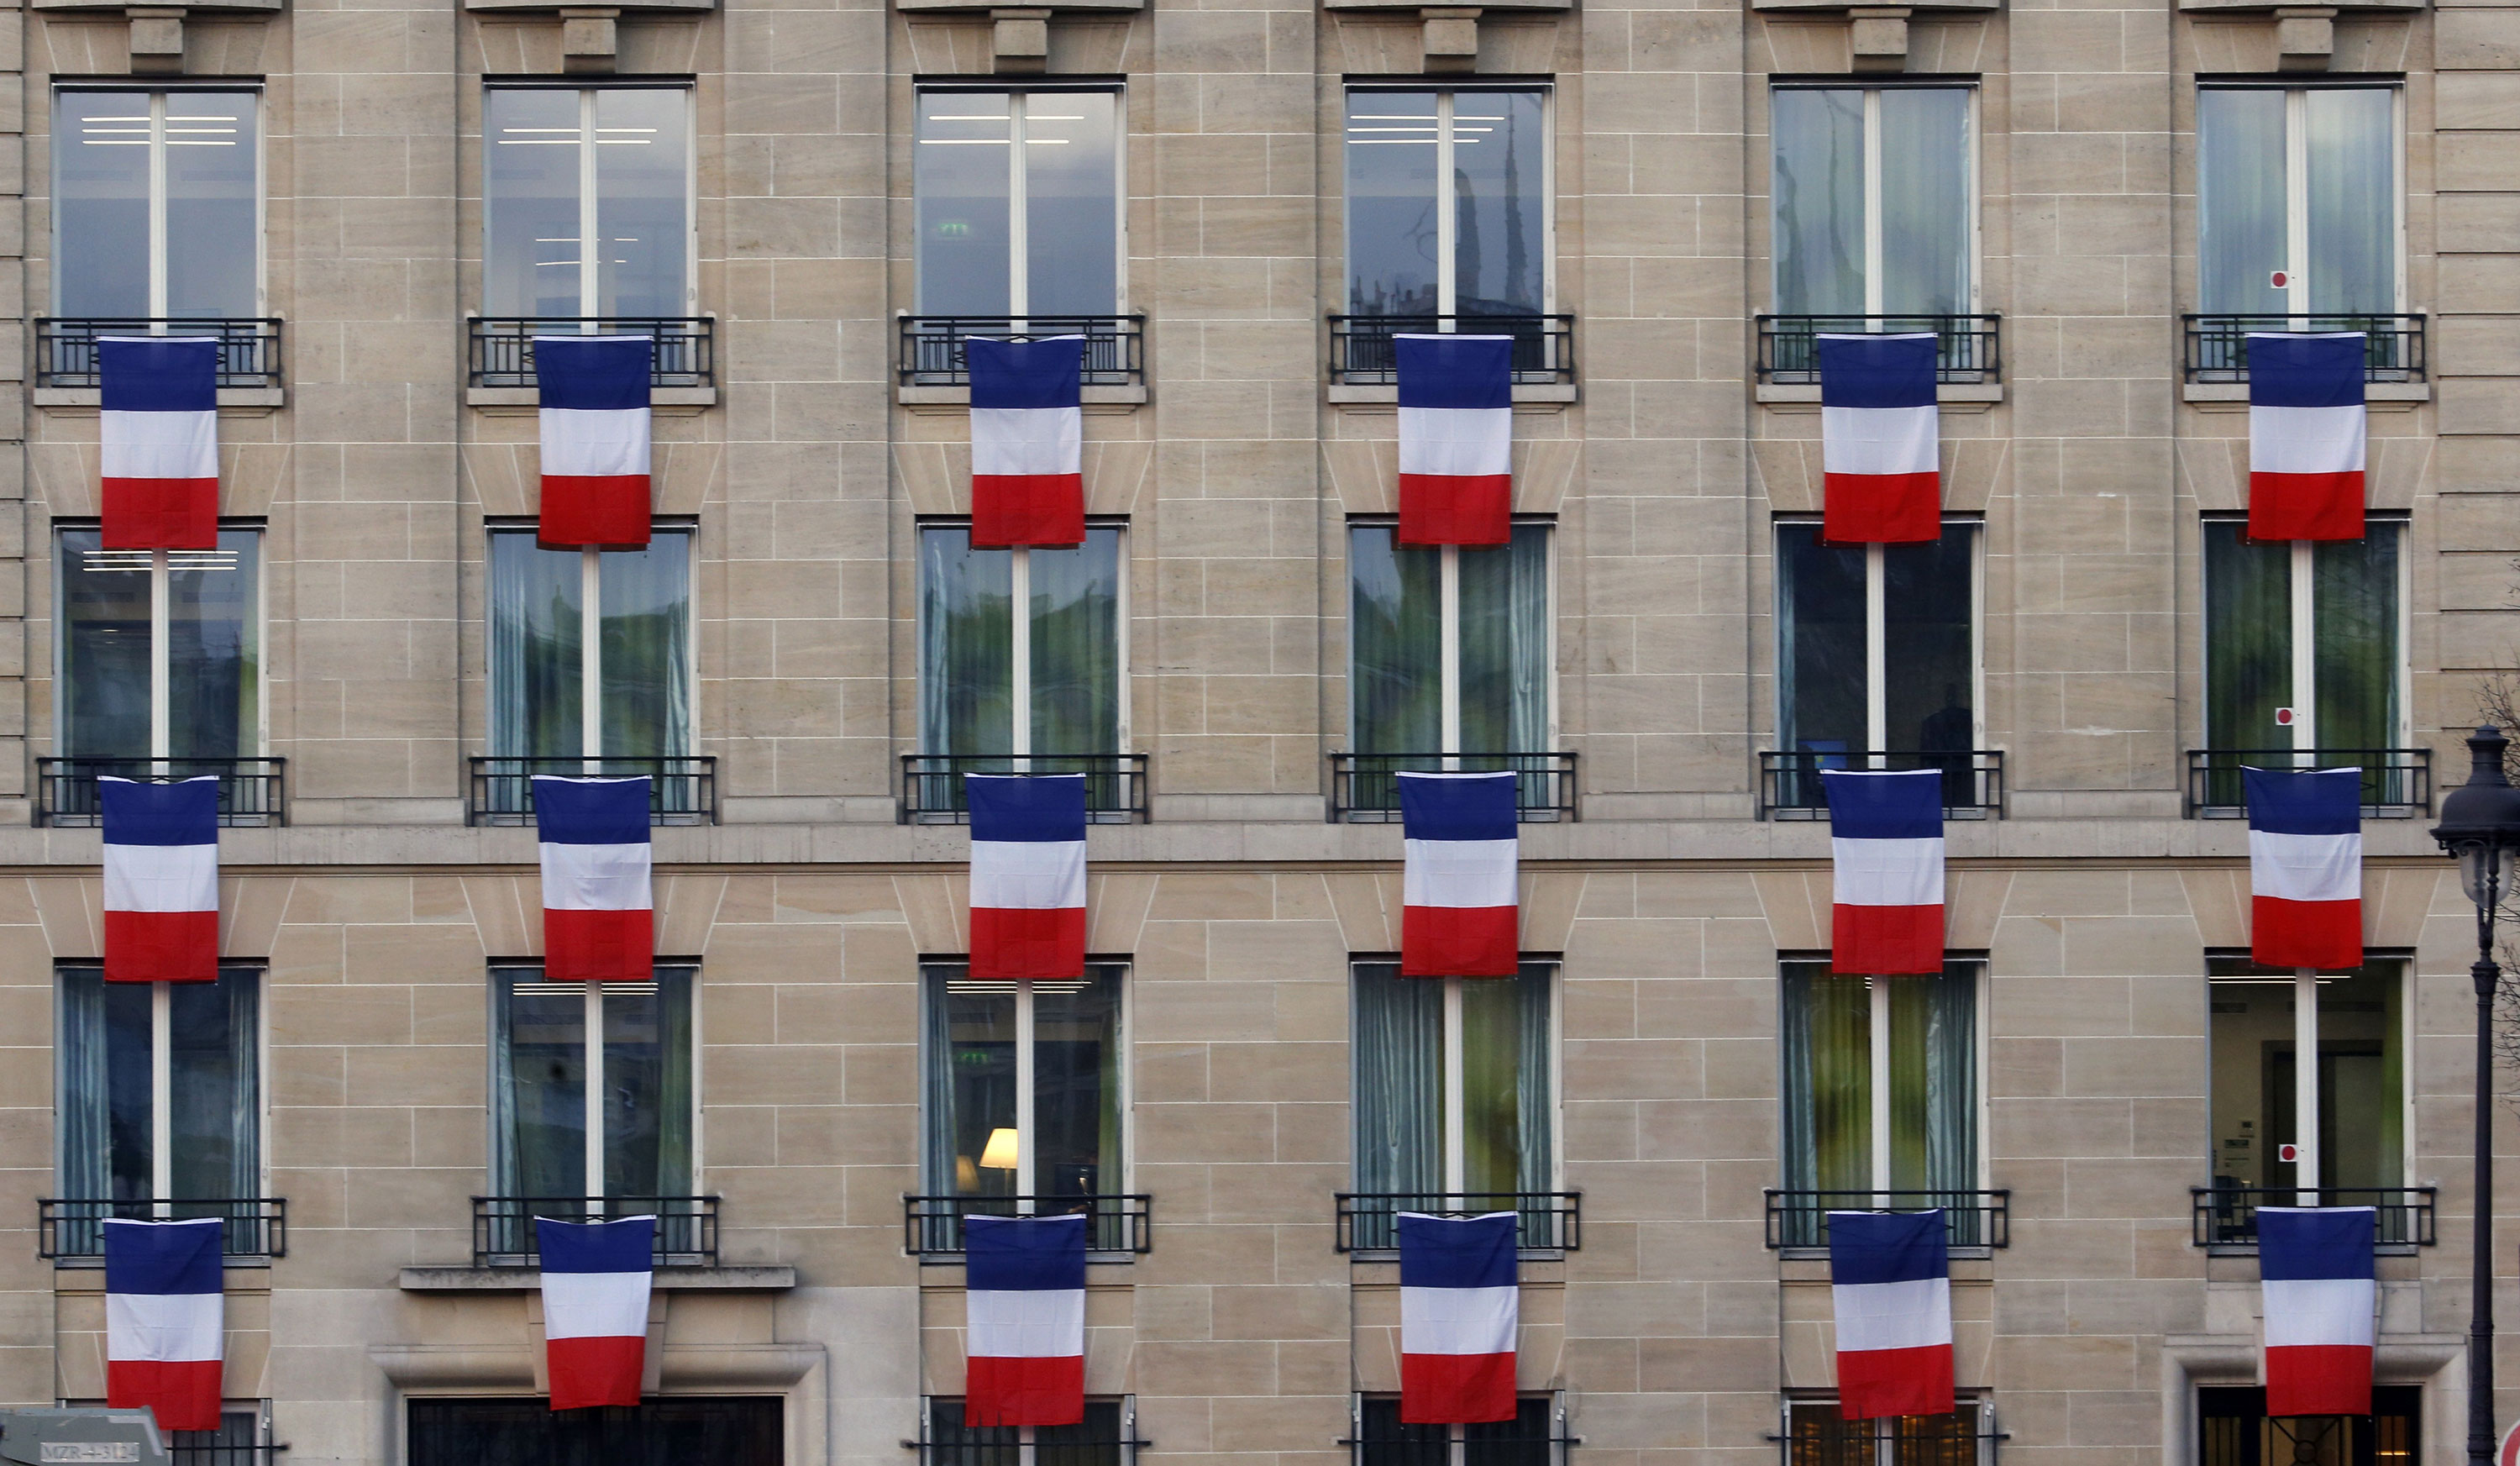 The French President Francois Hollande called on all French citizens to hang the tricolour national flag from their windows on Friday to pay tribute to the victims of the Paris attacks [Jacky Naegelen/Reuters]